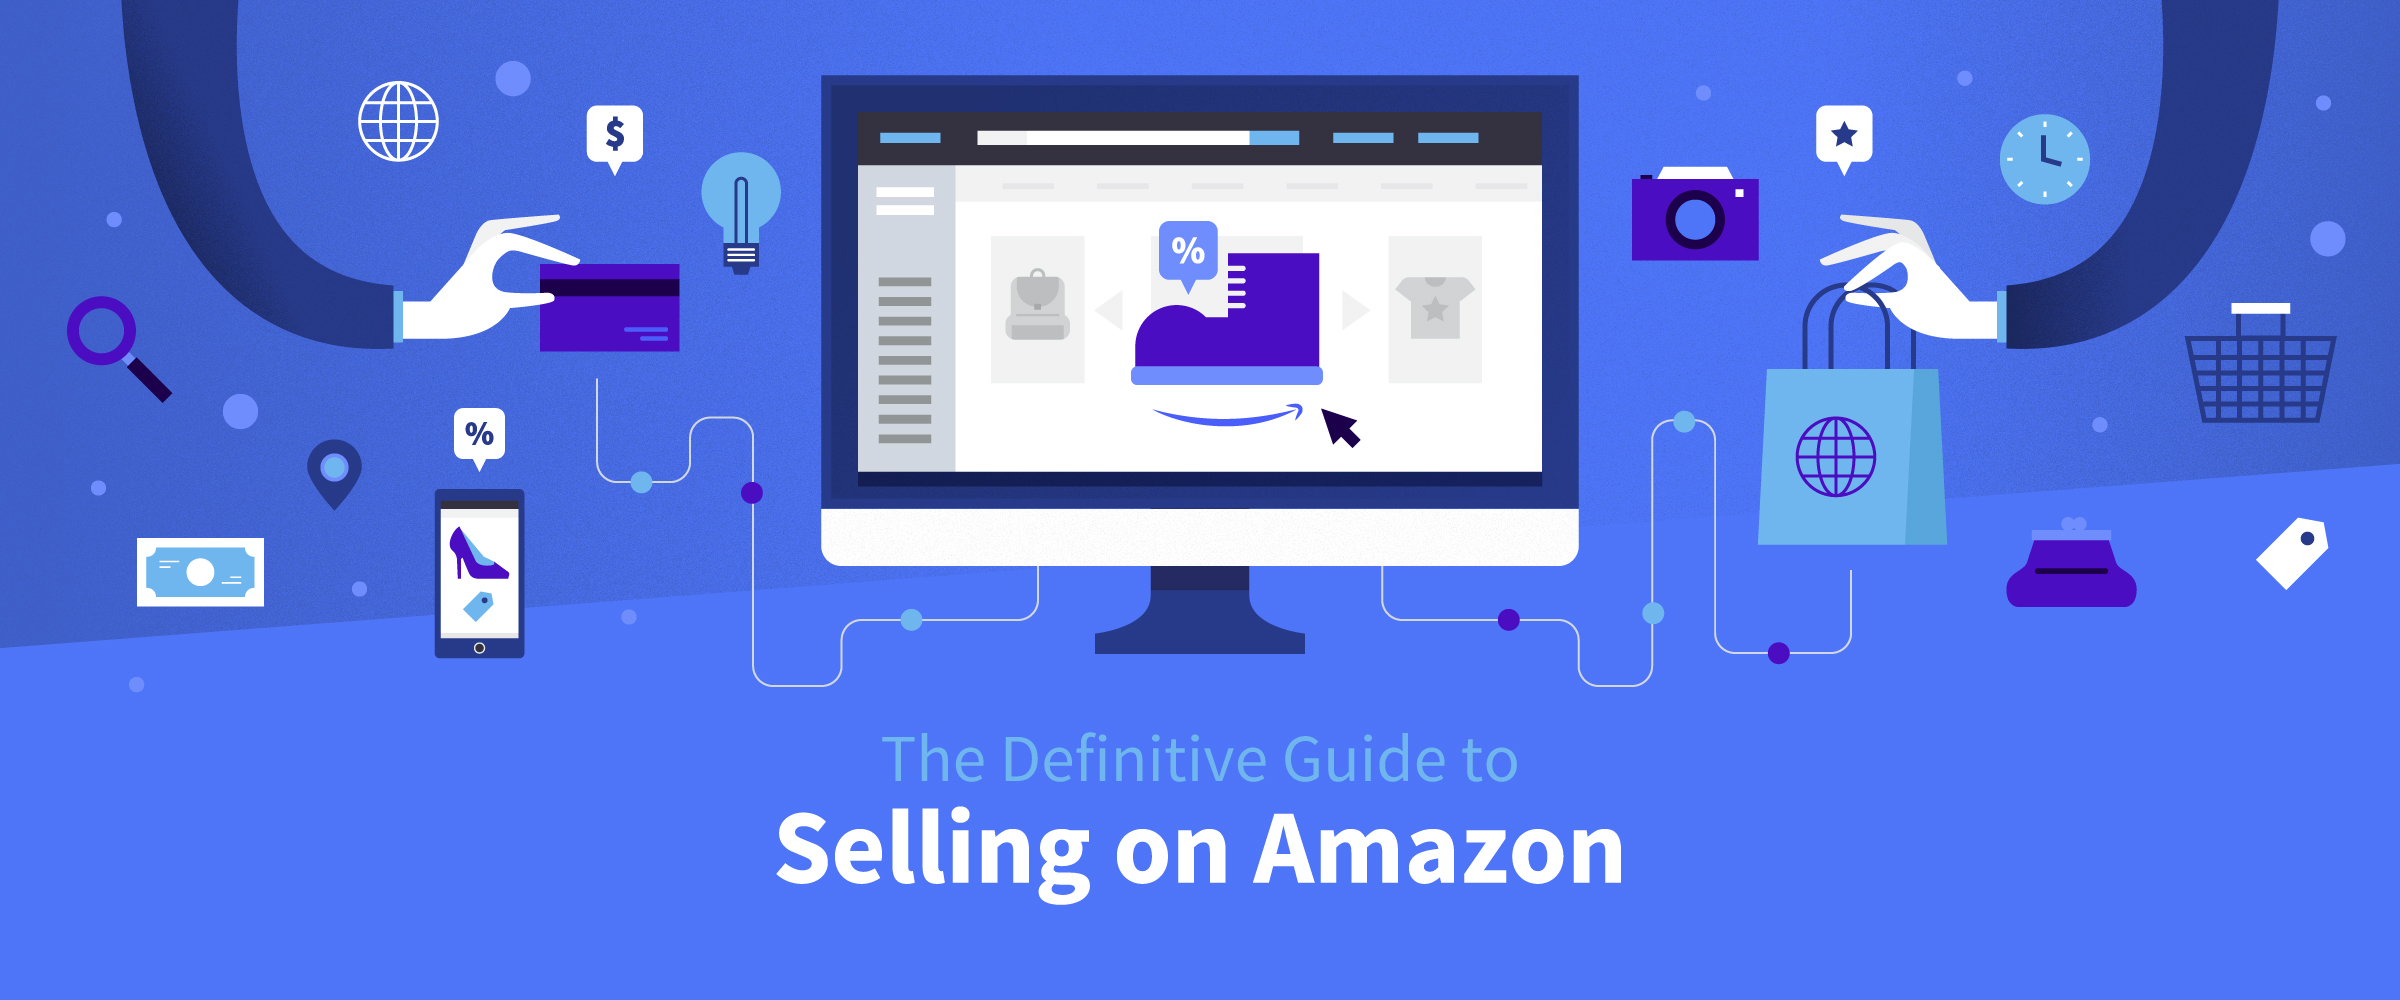 The Definitive Guide to Selling on Amazon [2018 Edition]